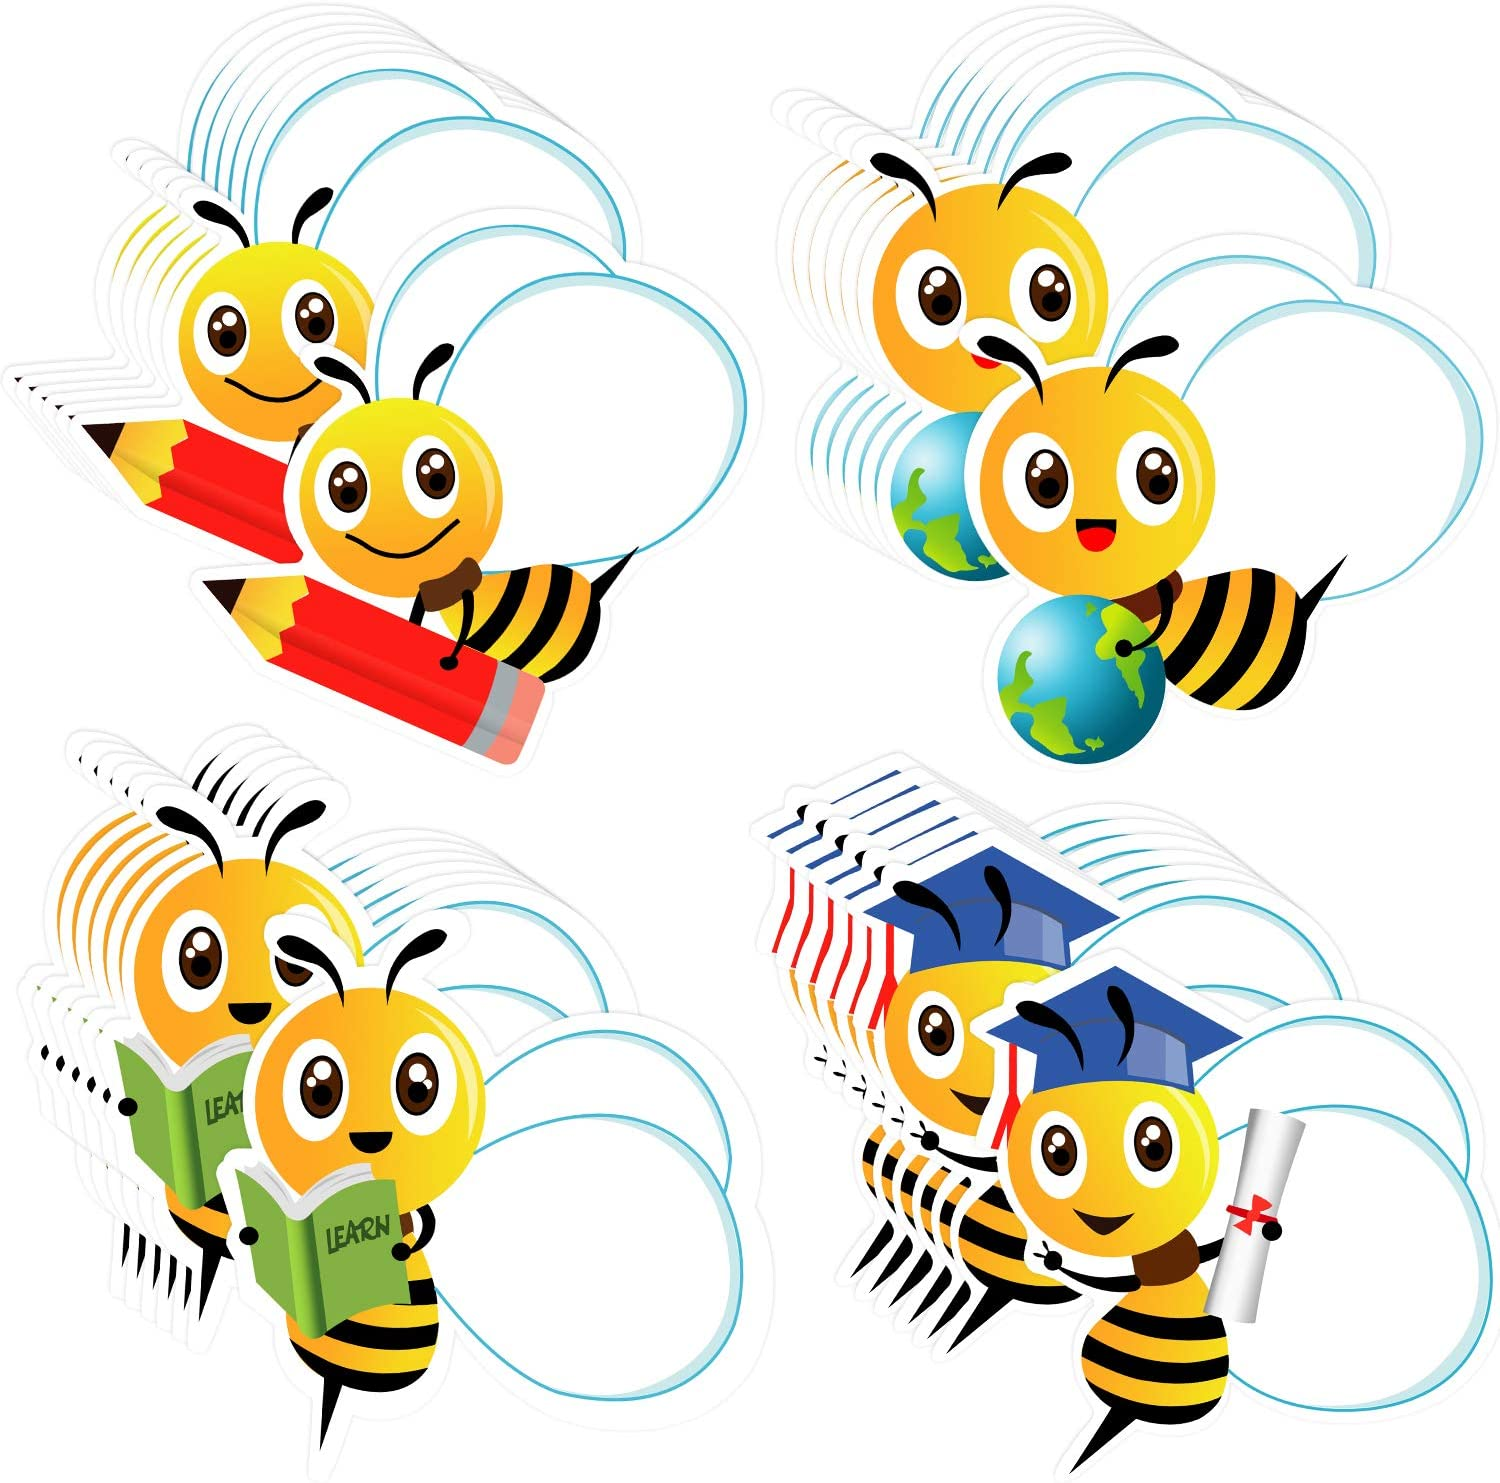 100 Pieces Bees Cutouts Stickers Self-Adhesive Bees Bulletin Board Classroom Decoration Stickers Bee Name Tag Labels